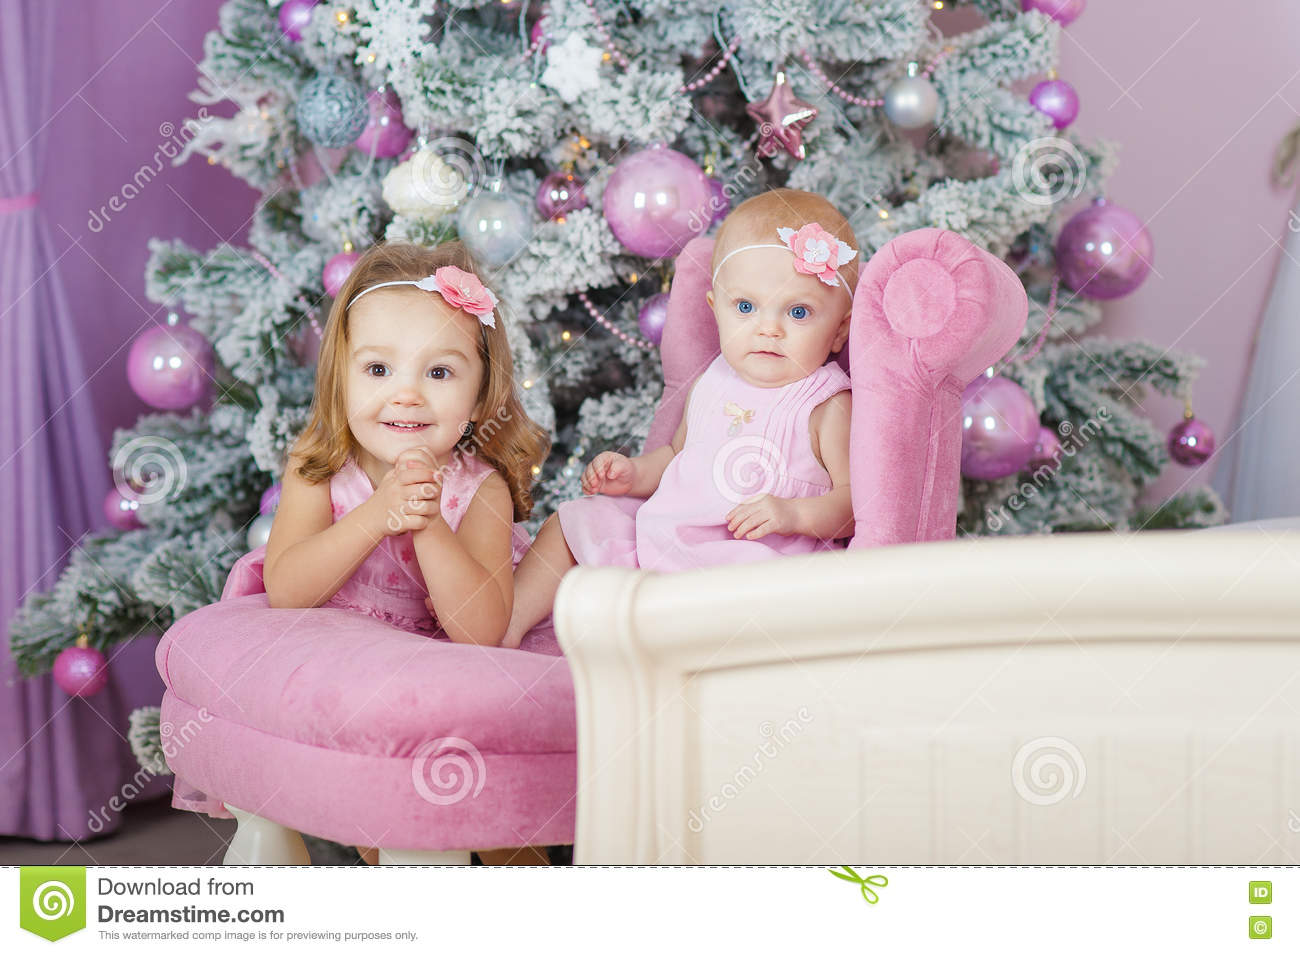 Two sisters at home with Christmas tree. Portrait of happy children girls decorations.